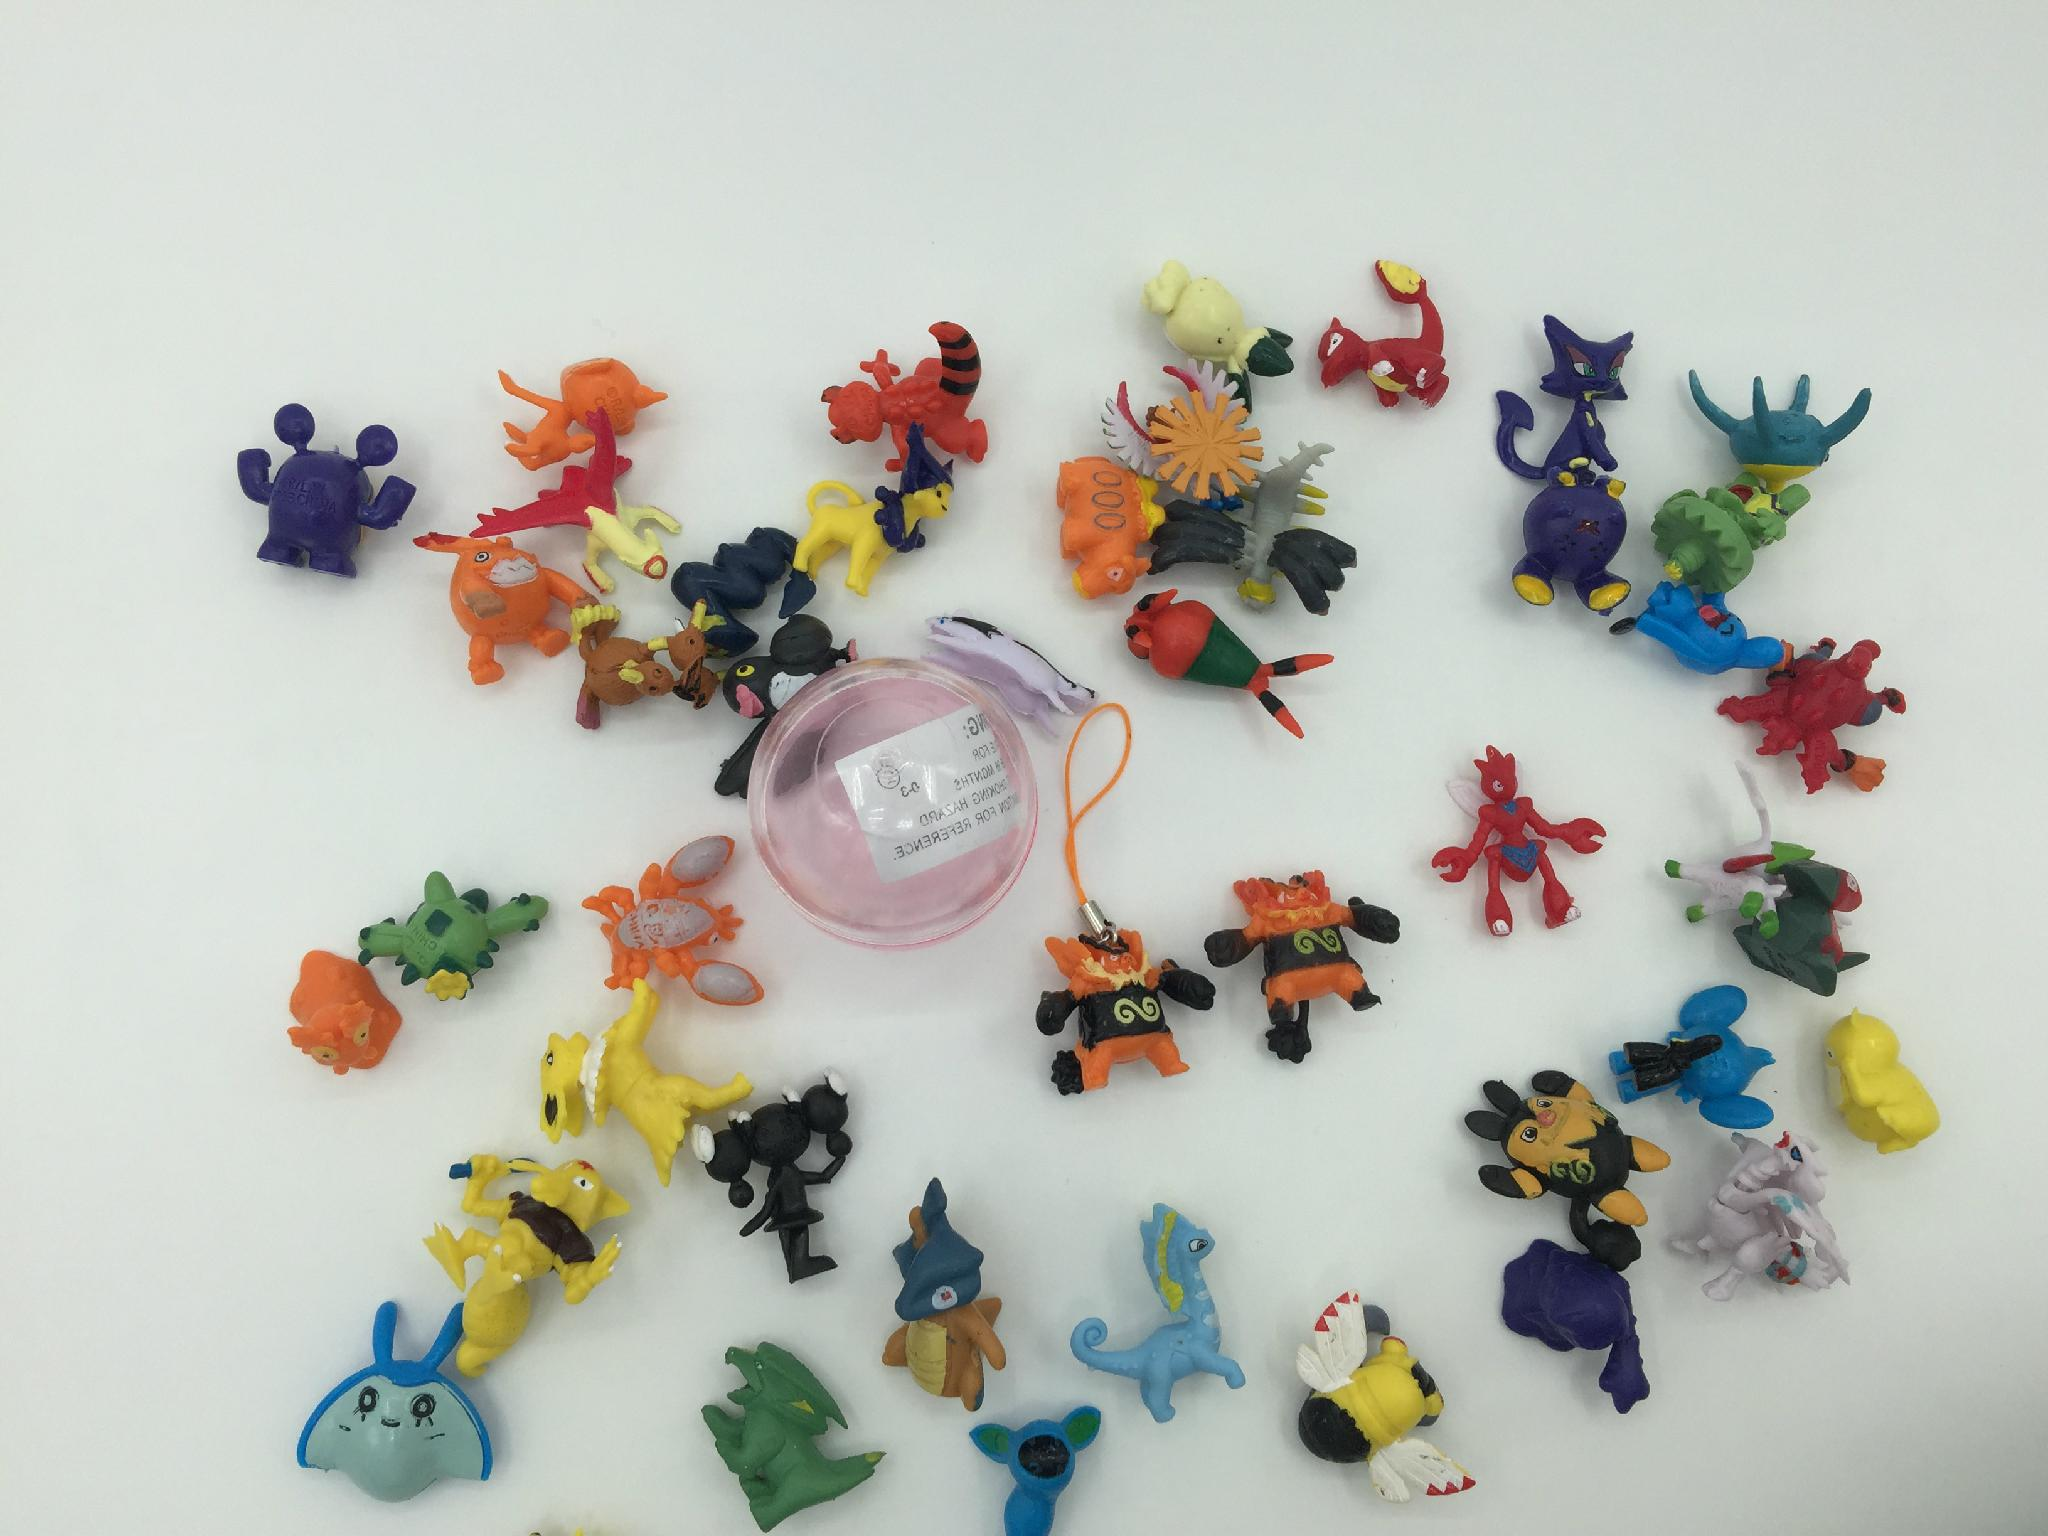 capsules toy-168 models Pokemon dangler 2